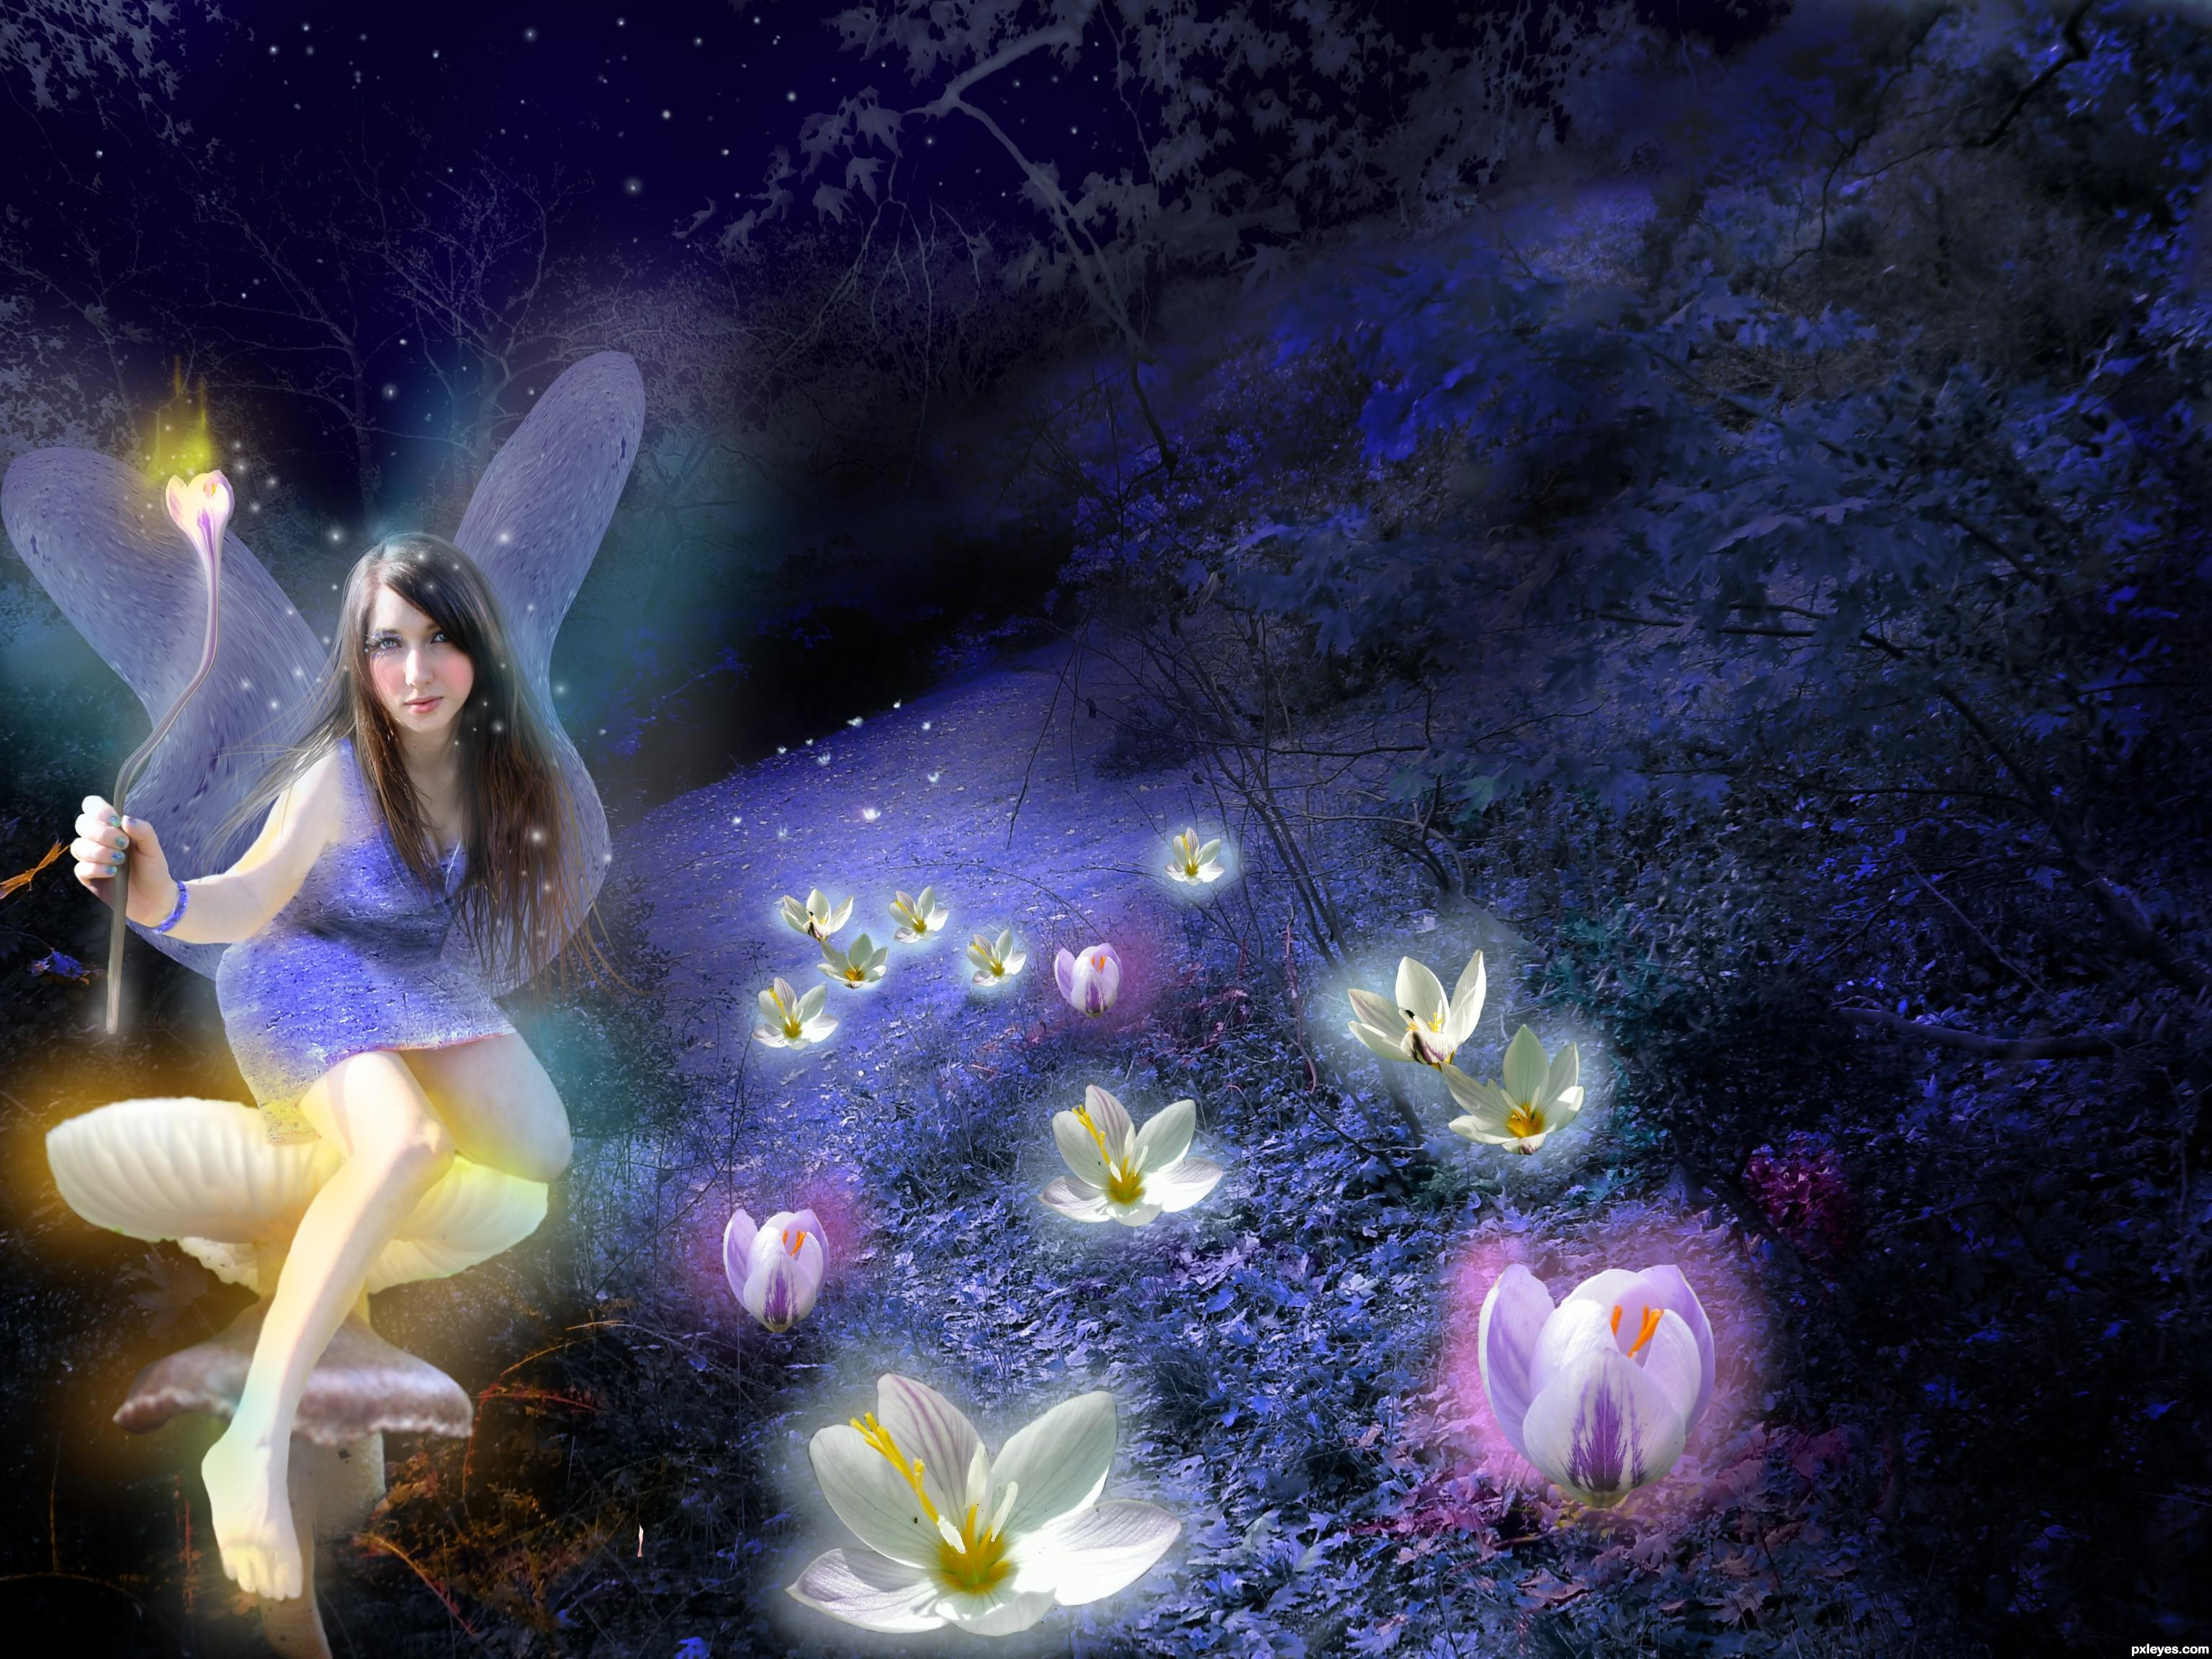 Fairy s garden   88217   High Quality and Resolution Wallpapers on 3072x2304